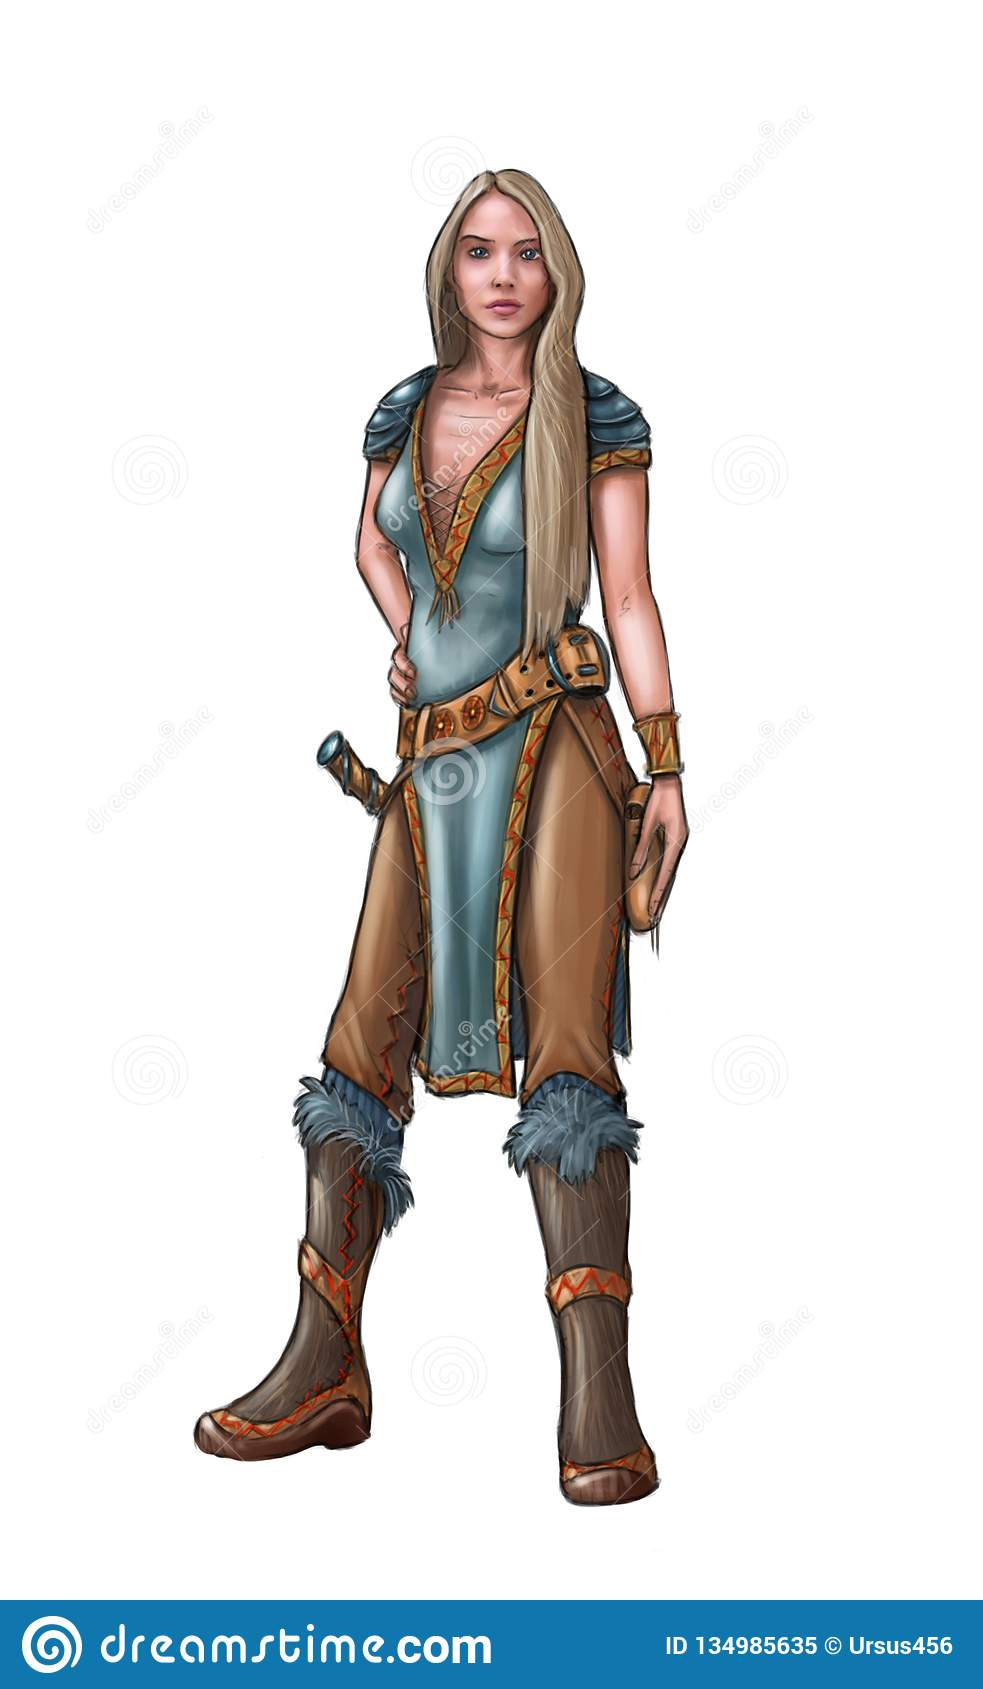 Concept Art Fantasy Illustration Of Beautiful Young Woman Warrior